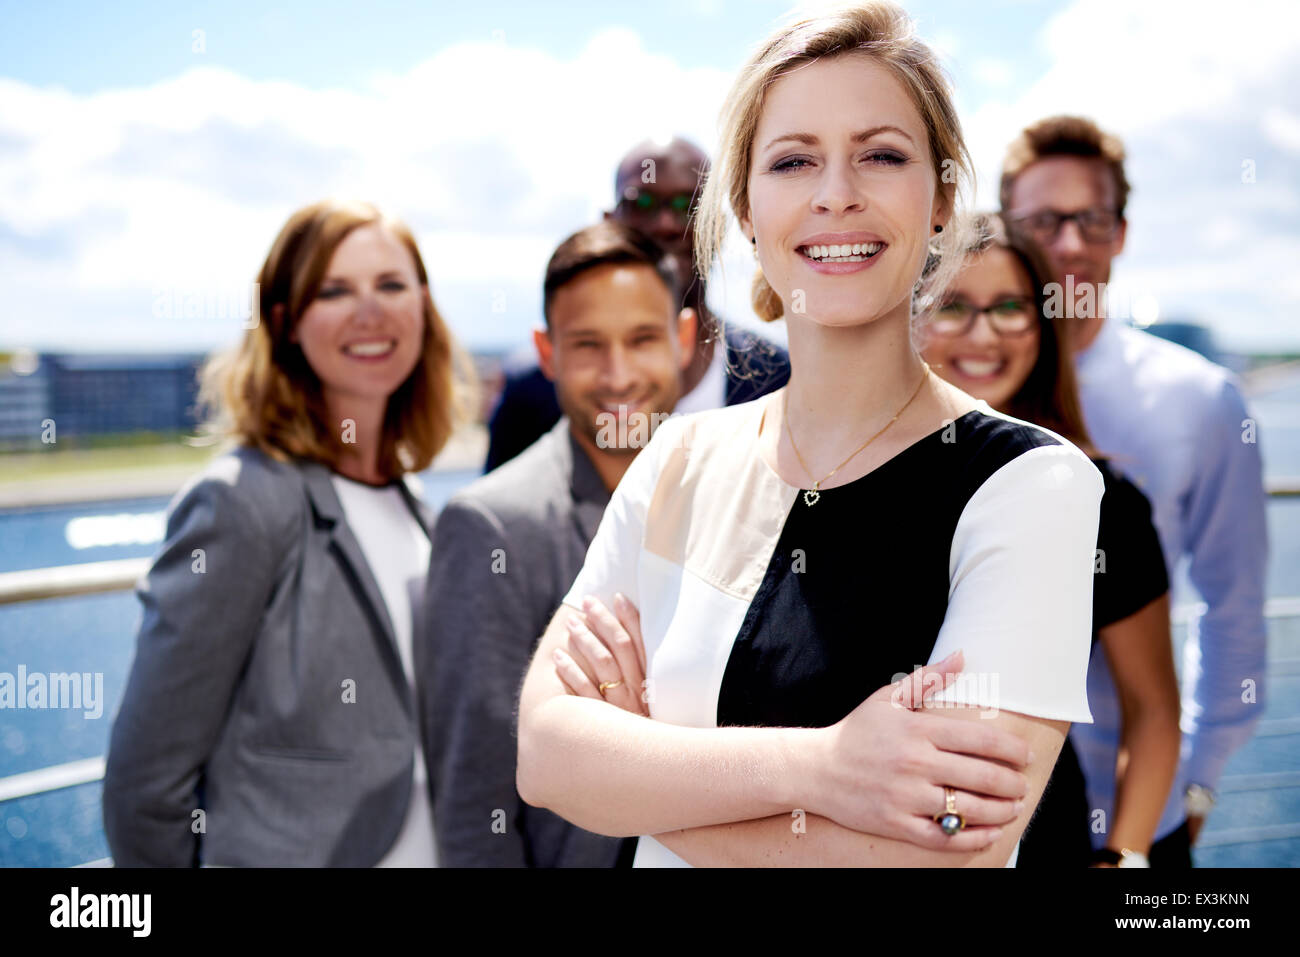 White female executive standing in front of colleagues with arms crossed smiling. - Stock Image